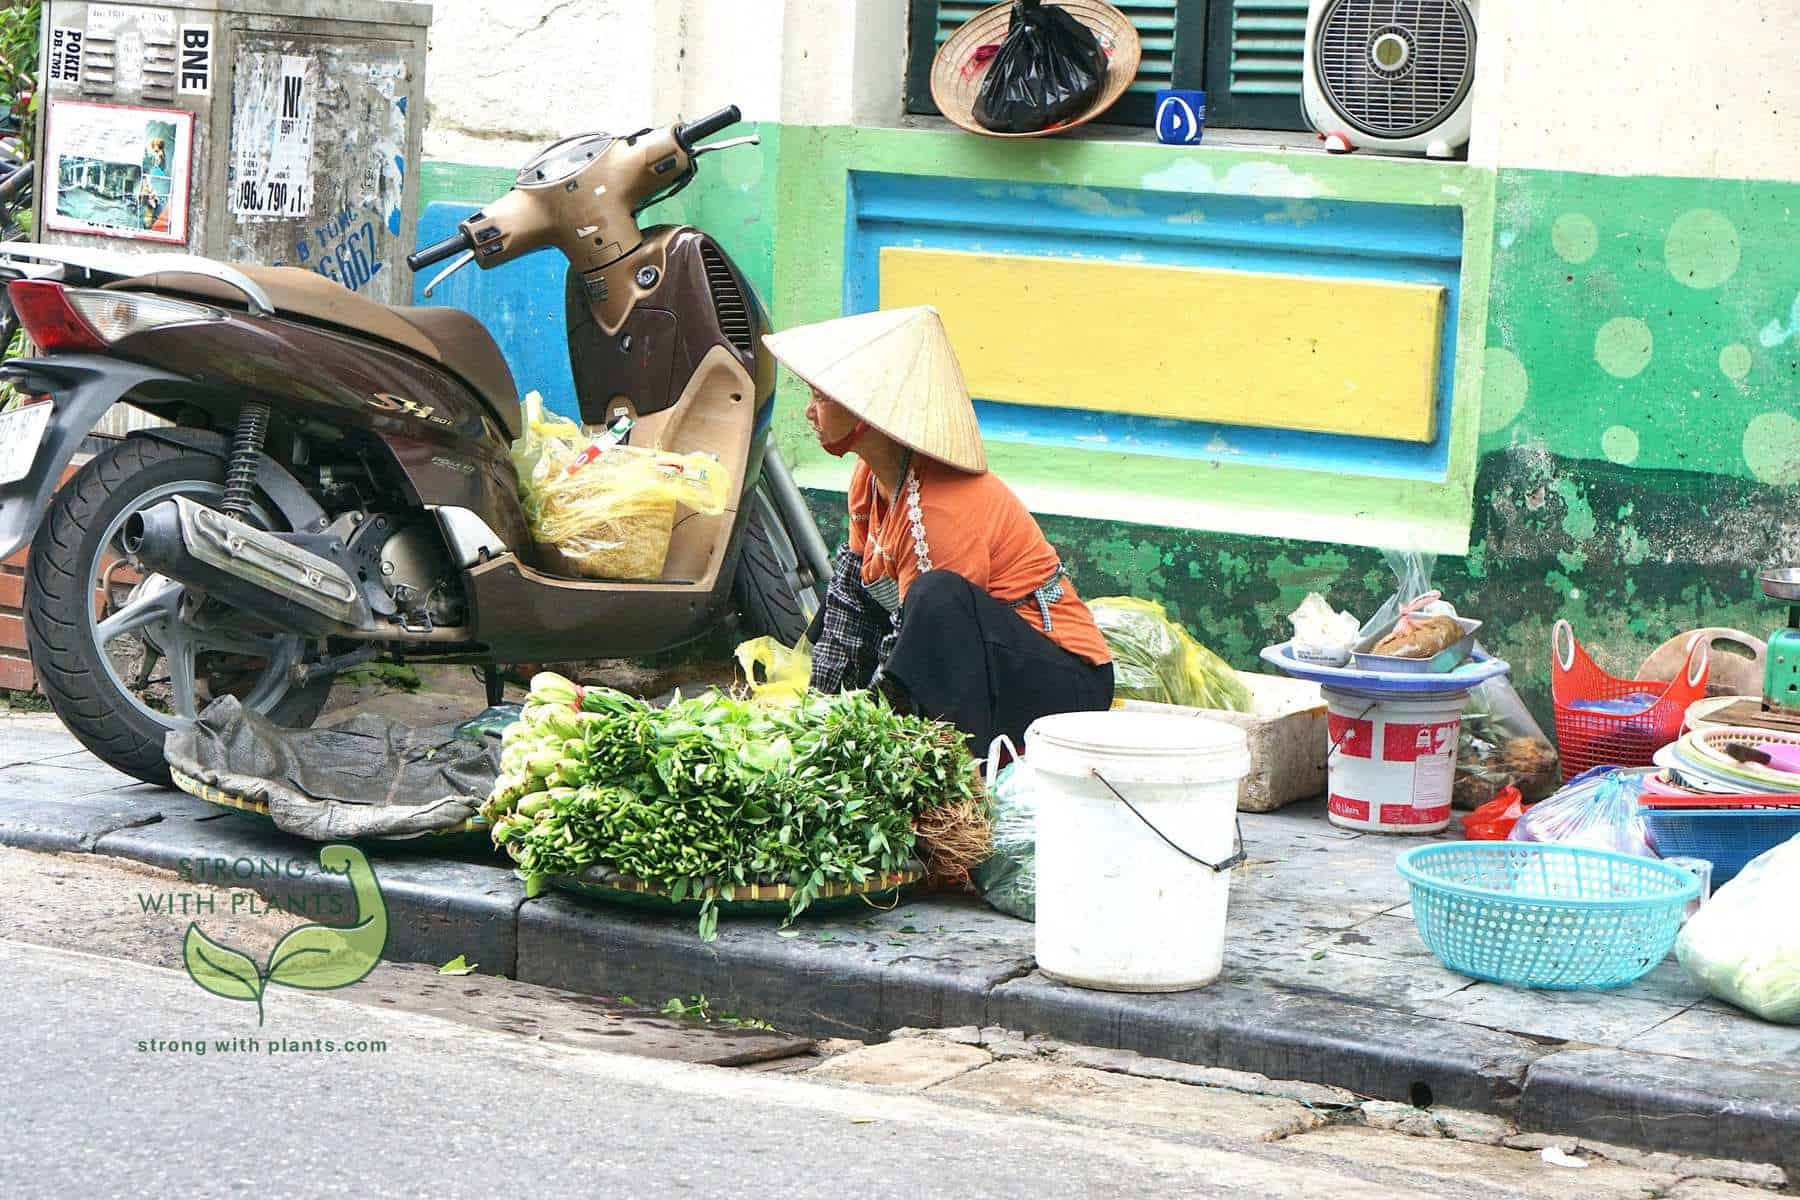 Vegan In Vietnam - Read This If You Are 100% Plant-Based